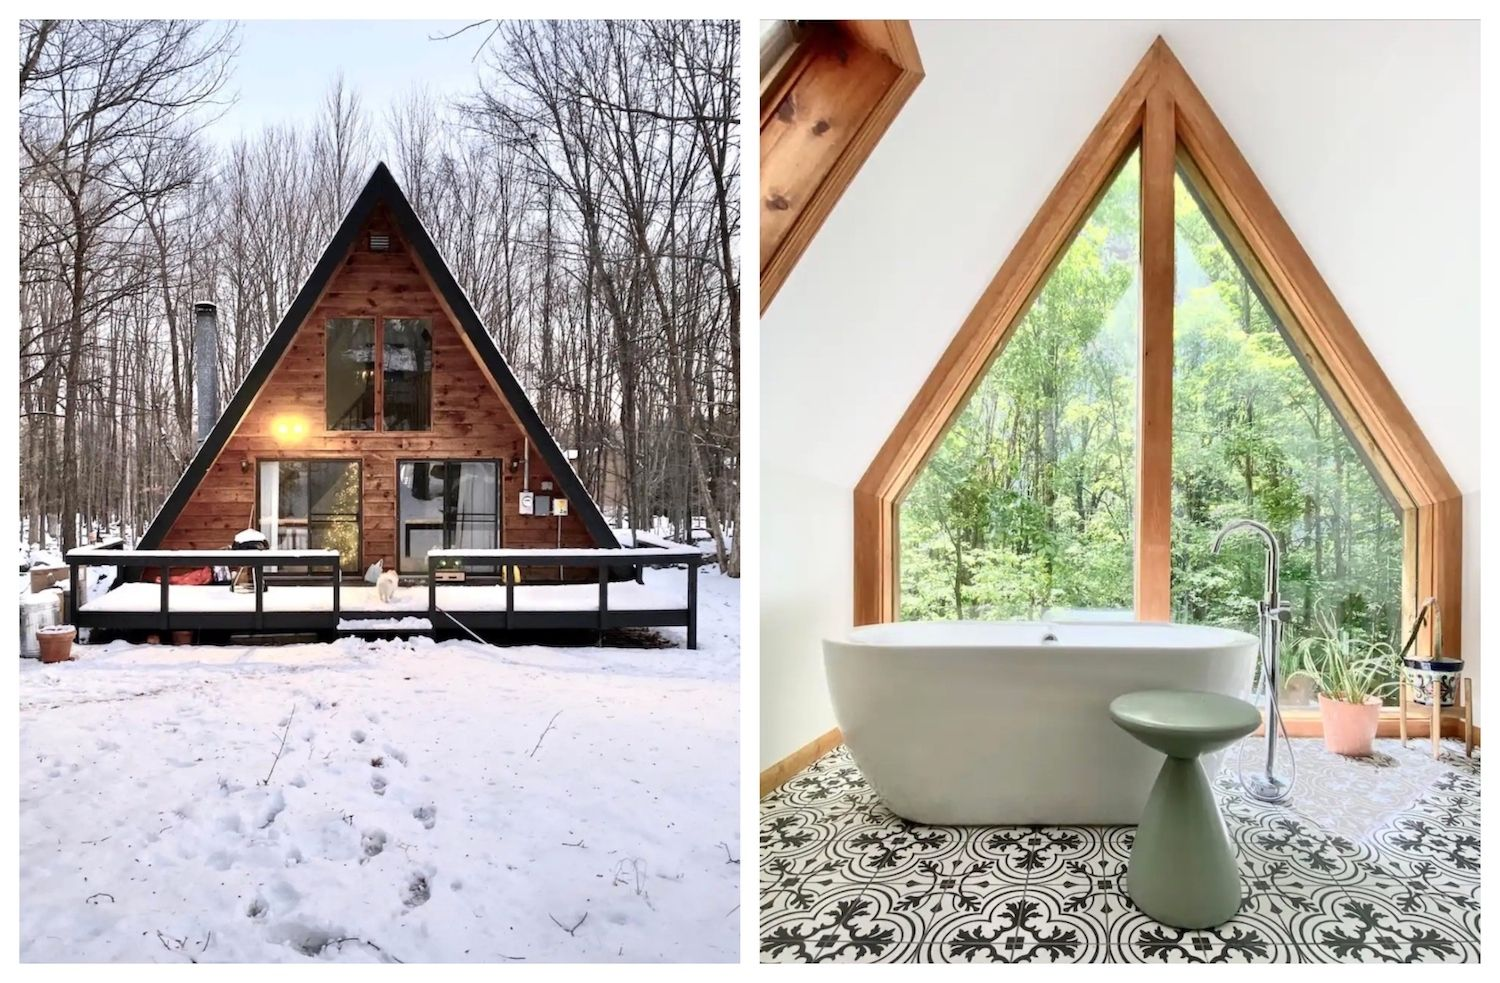 A-frame house on Airbnb